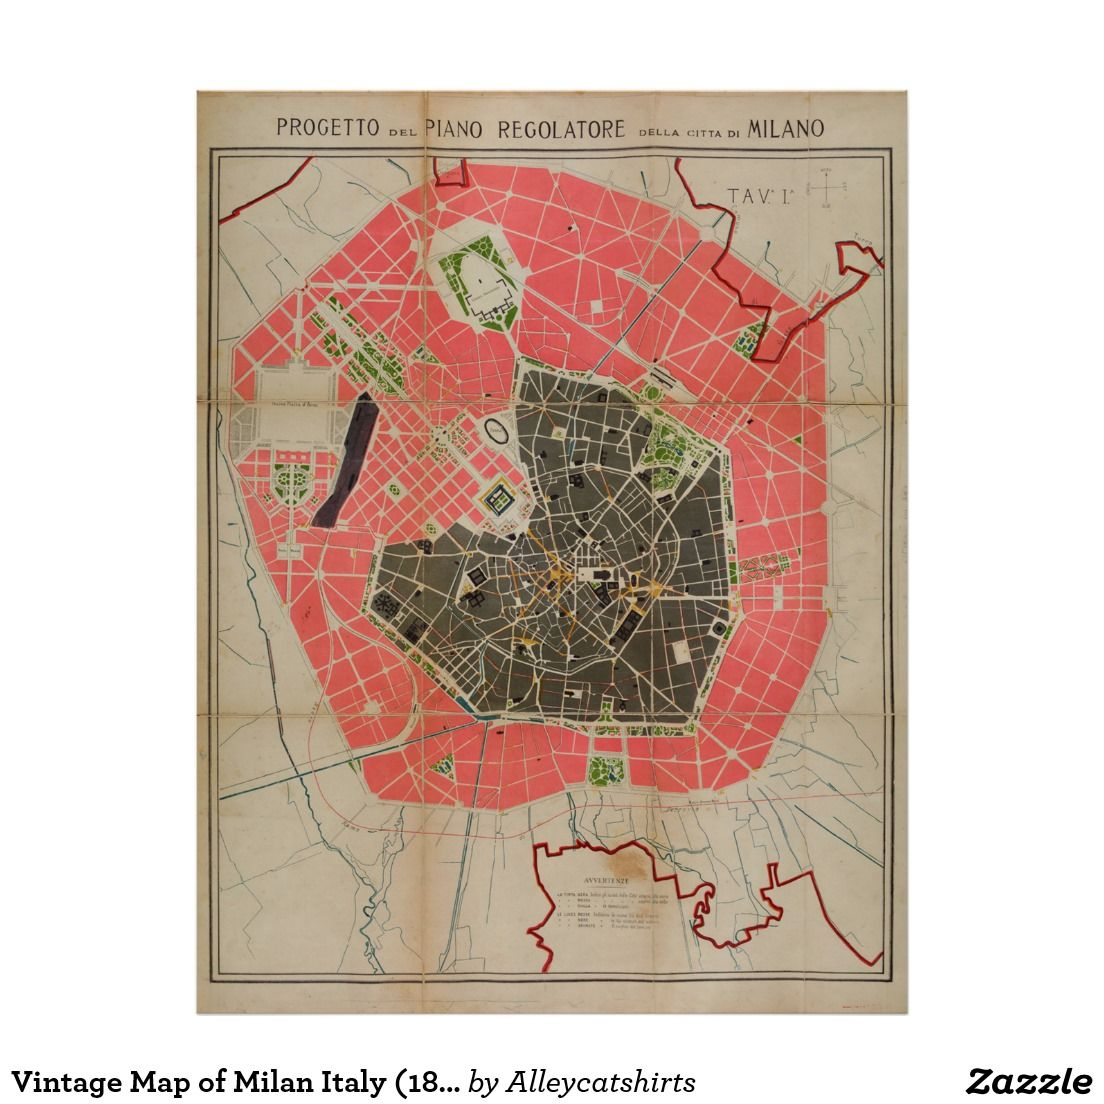 Vintage map of milan italy 1884 poster vintage map posters vintage map of milan italy 1884 poster gumiabroncs Choice Image